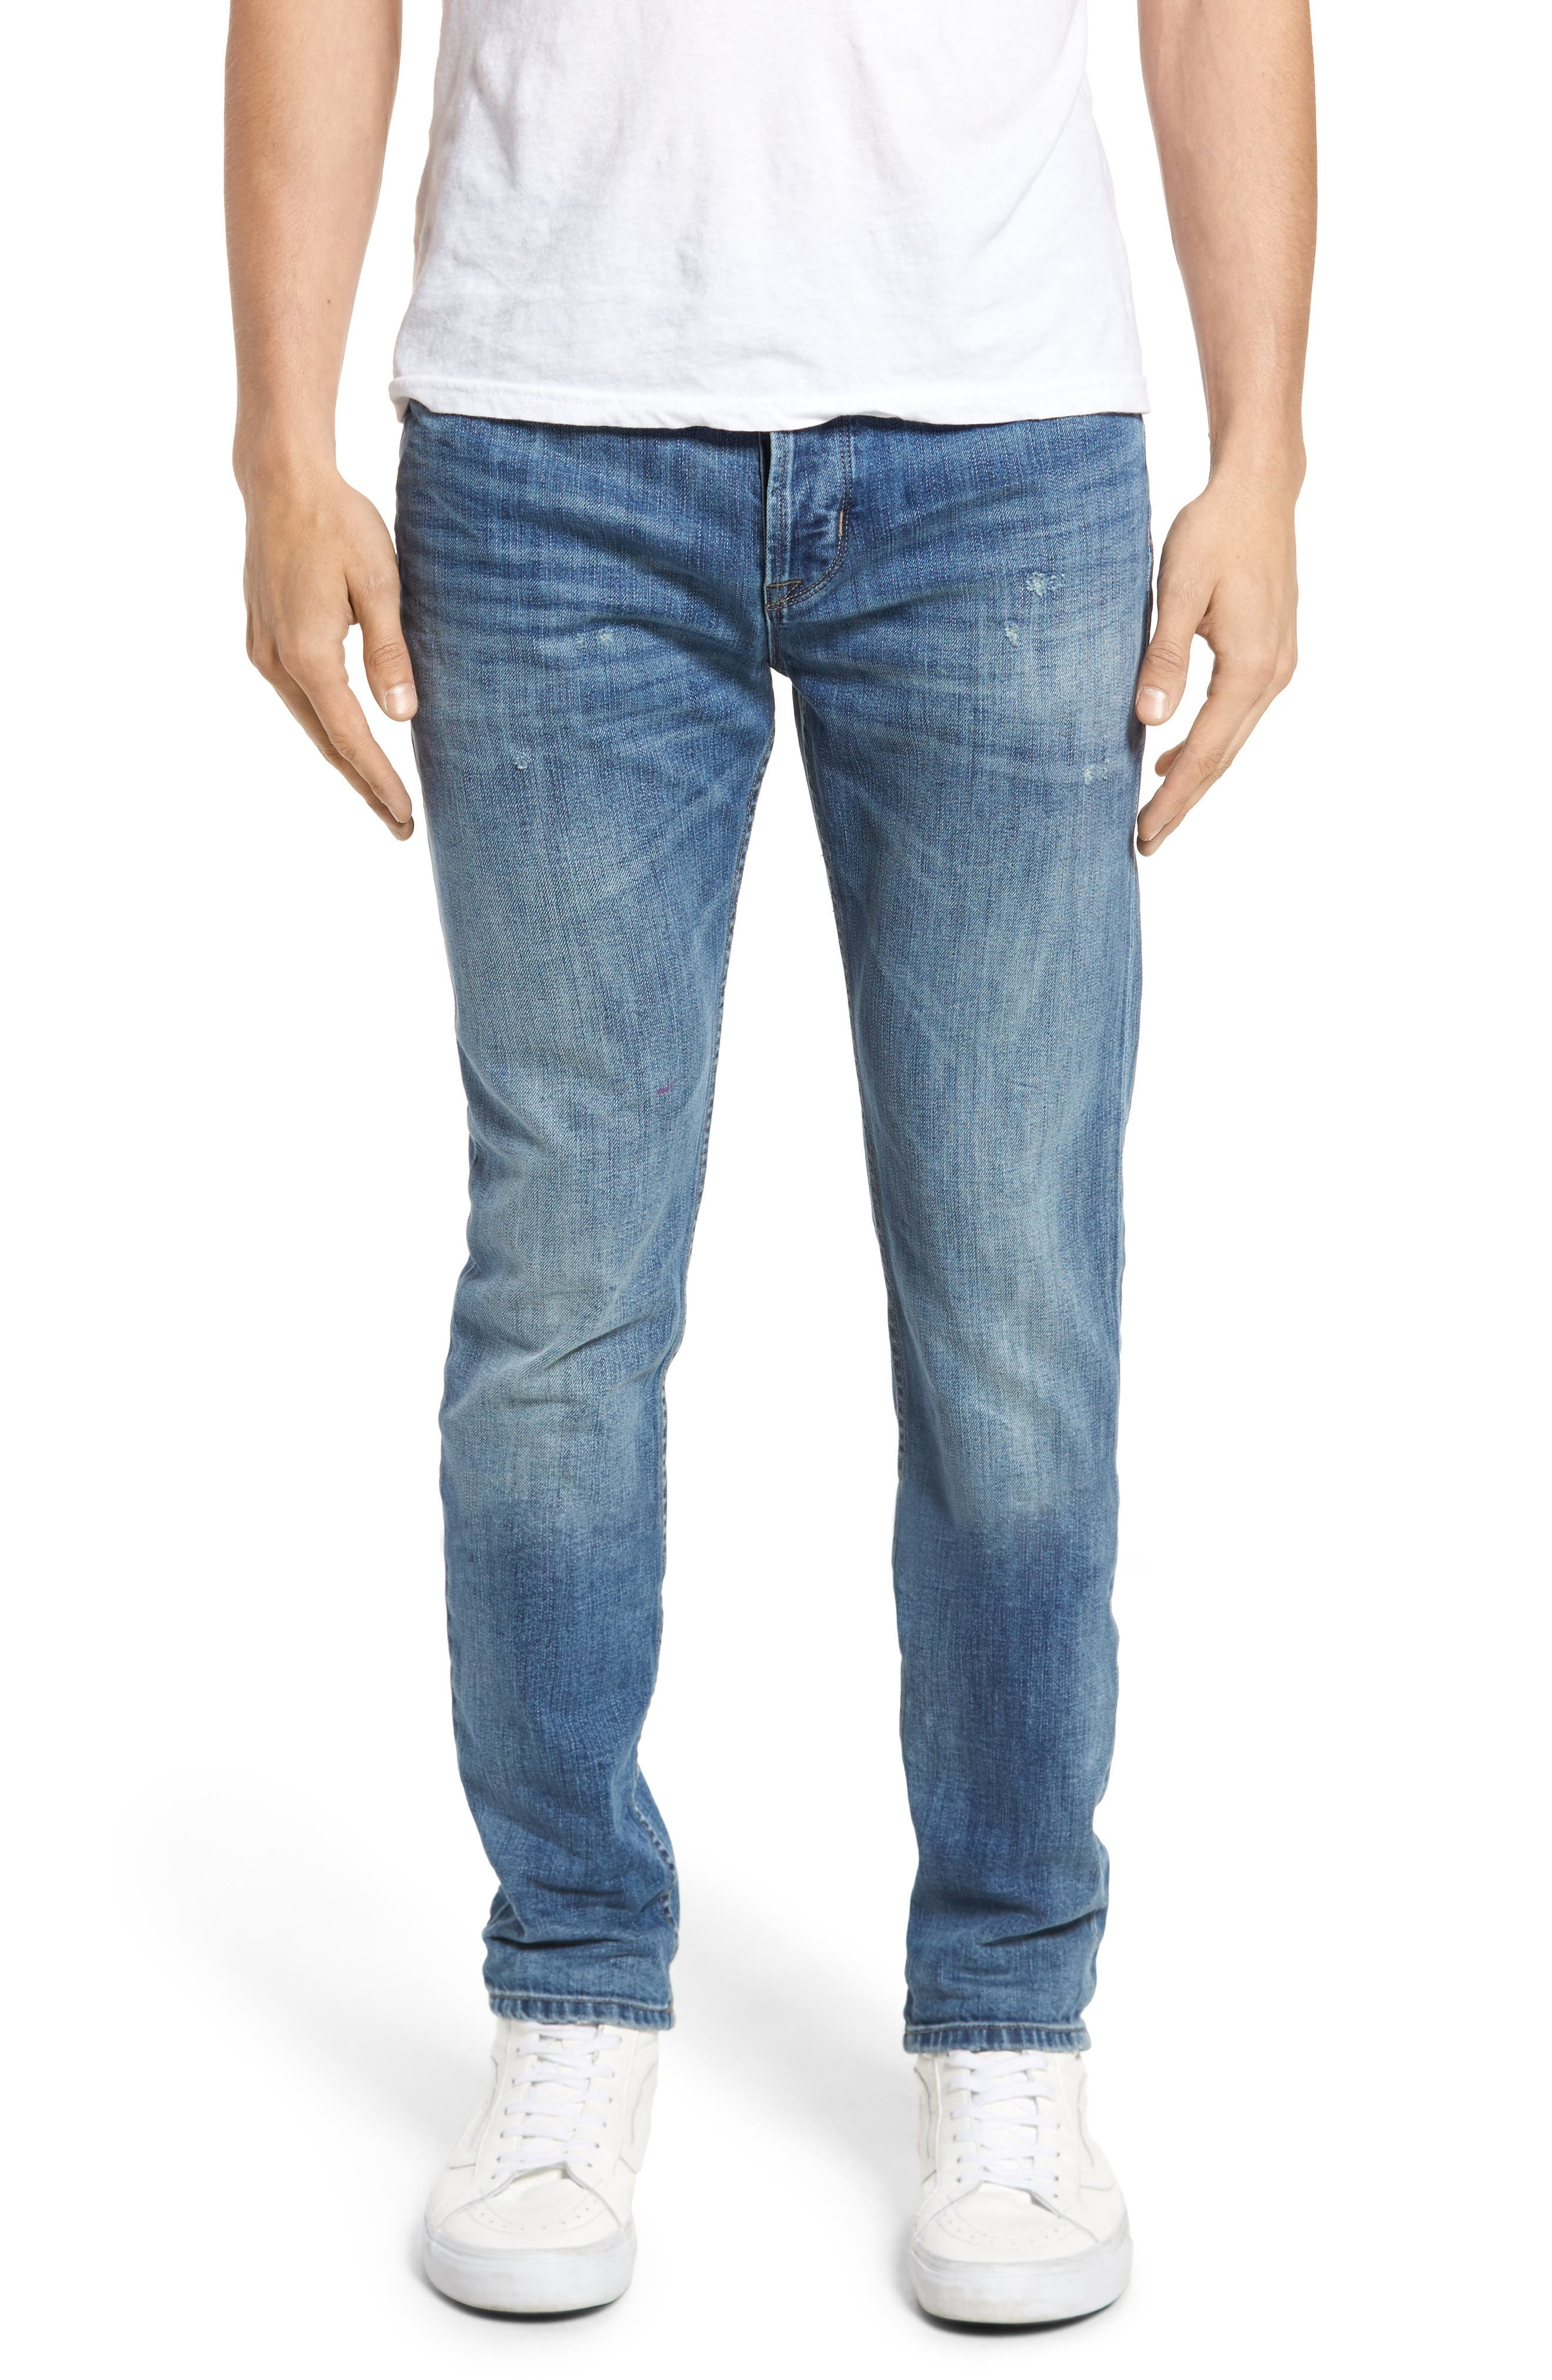 Main Image - Hudson Jeans Axl Skinny Fit Jeans (Racking)